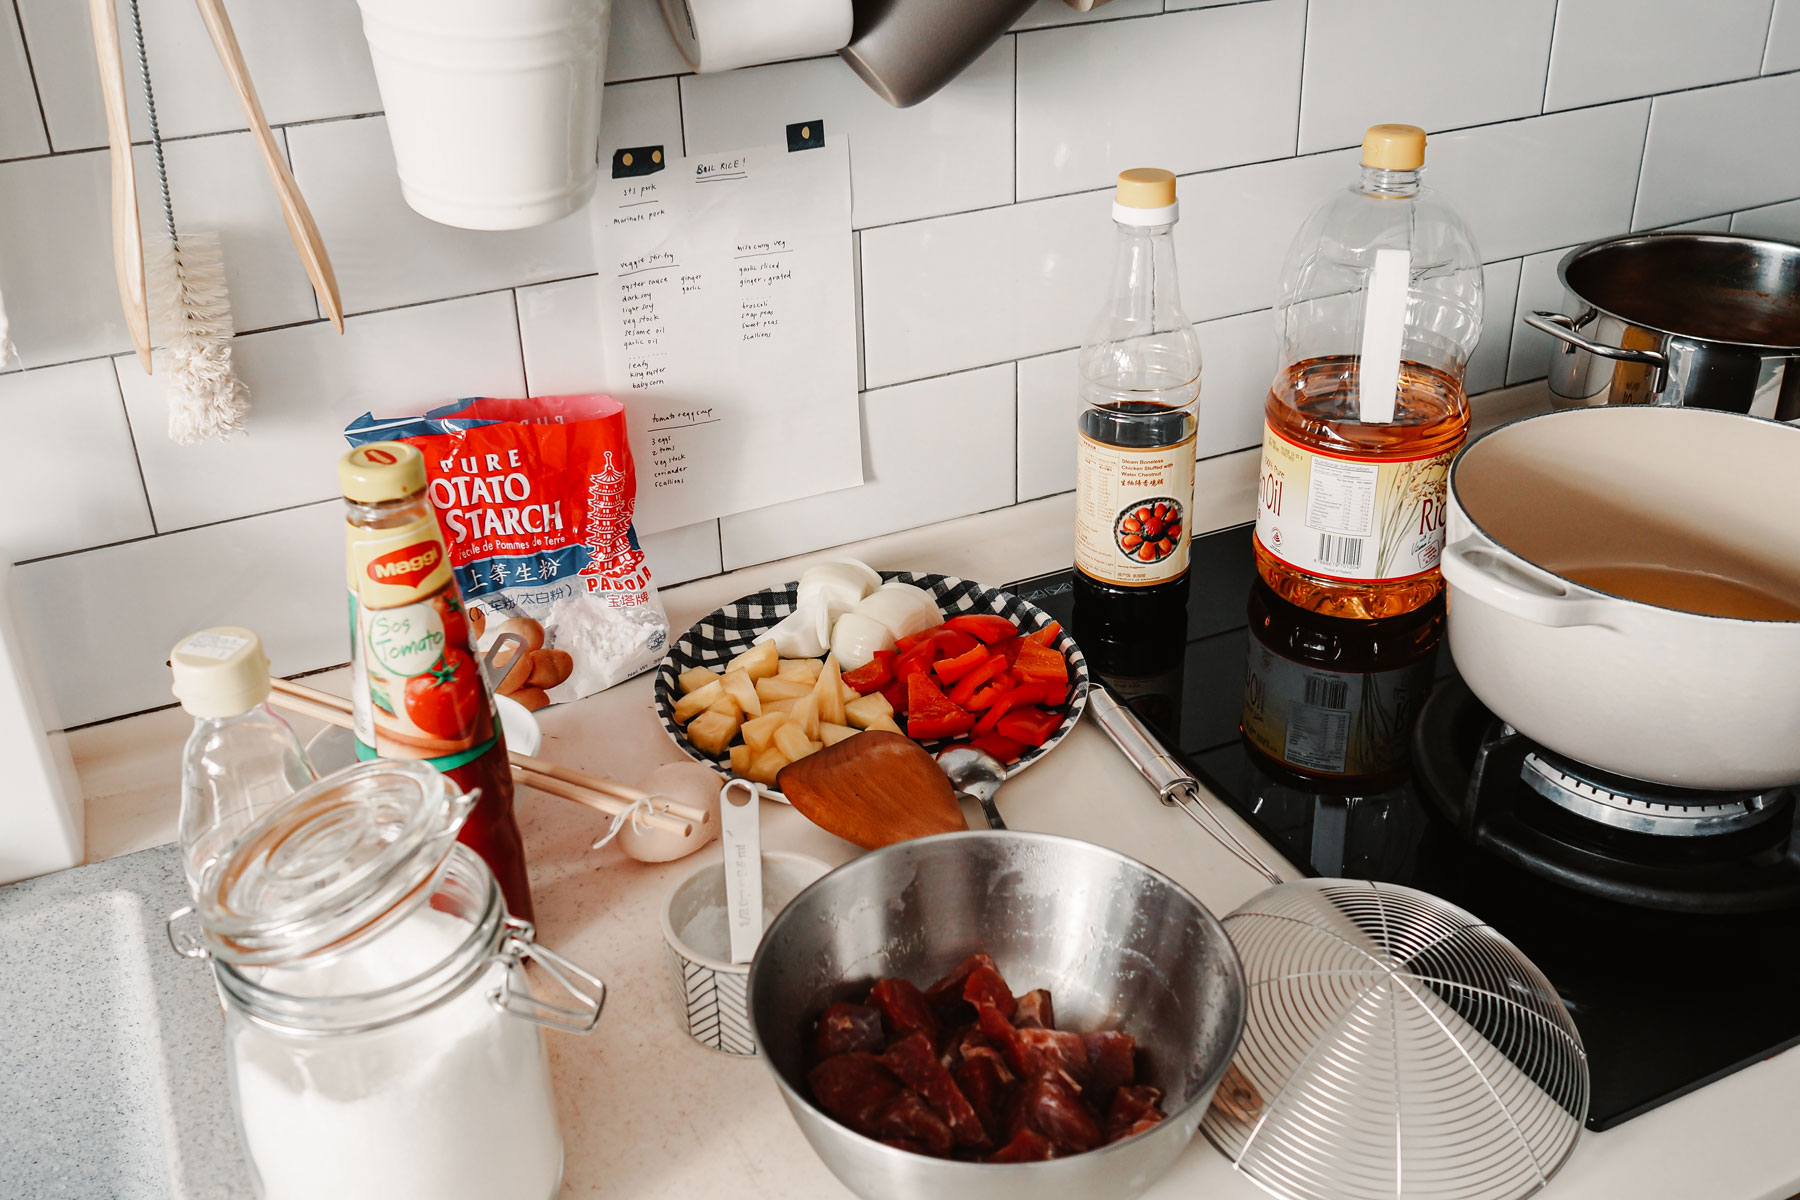 A countertop scattered with ingredients for sweet and sour pork.